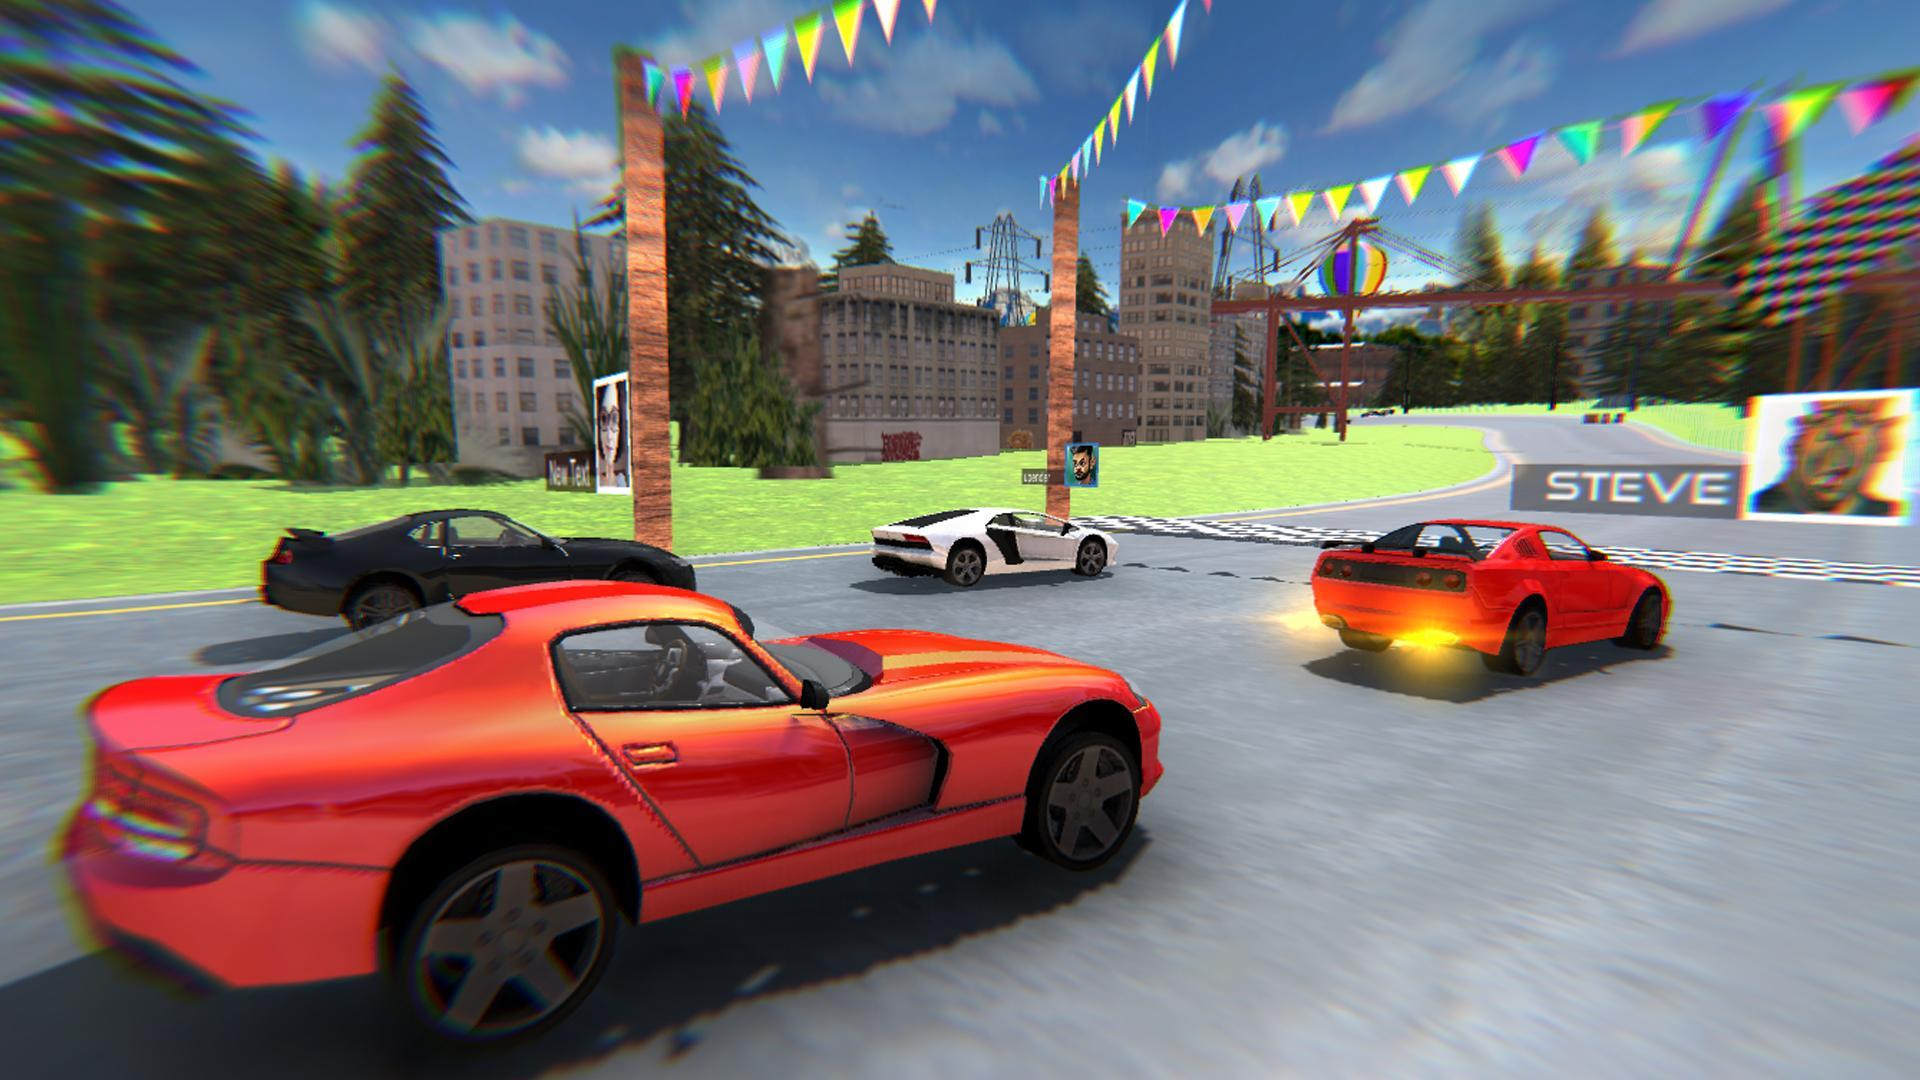 Real Driving Games >> Real Driving Racing Games 2019 For Android Apk Download